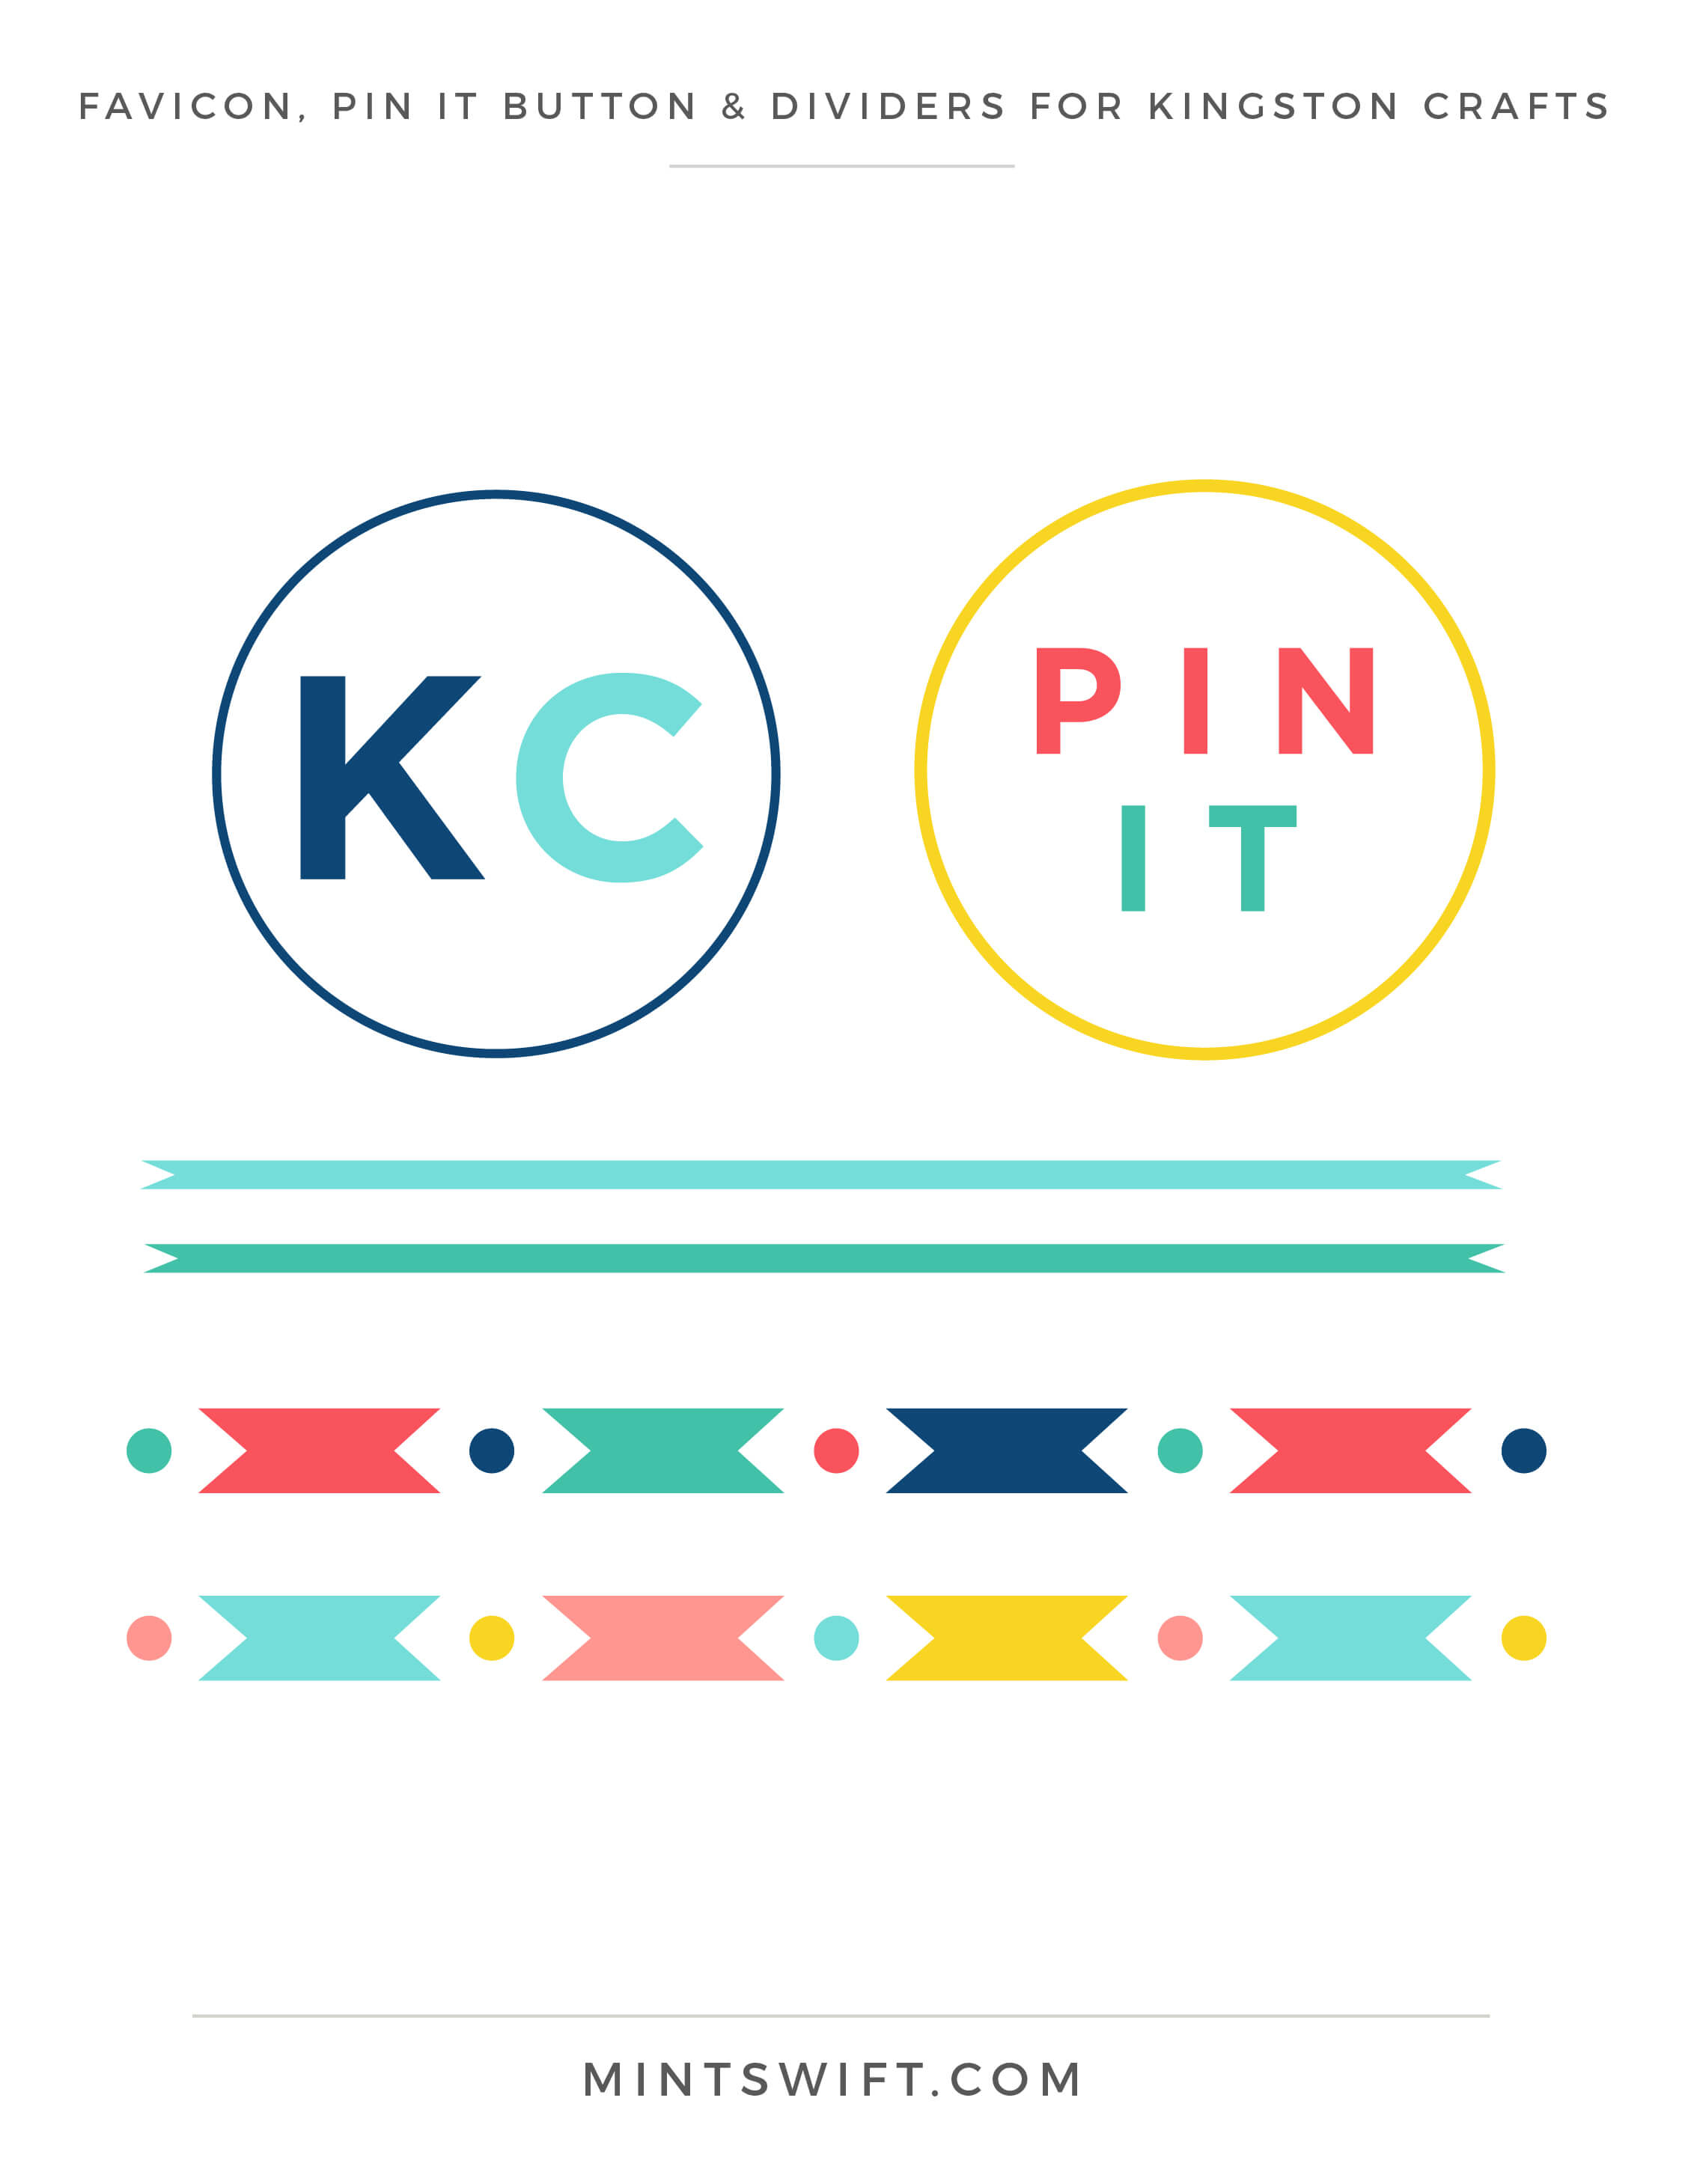 Kingston Crafts - Favicon, Pin it button & Dividers - Brand Design Package - MintSwift